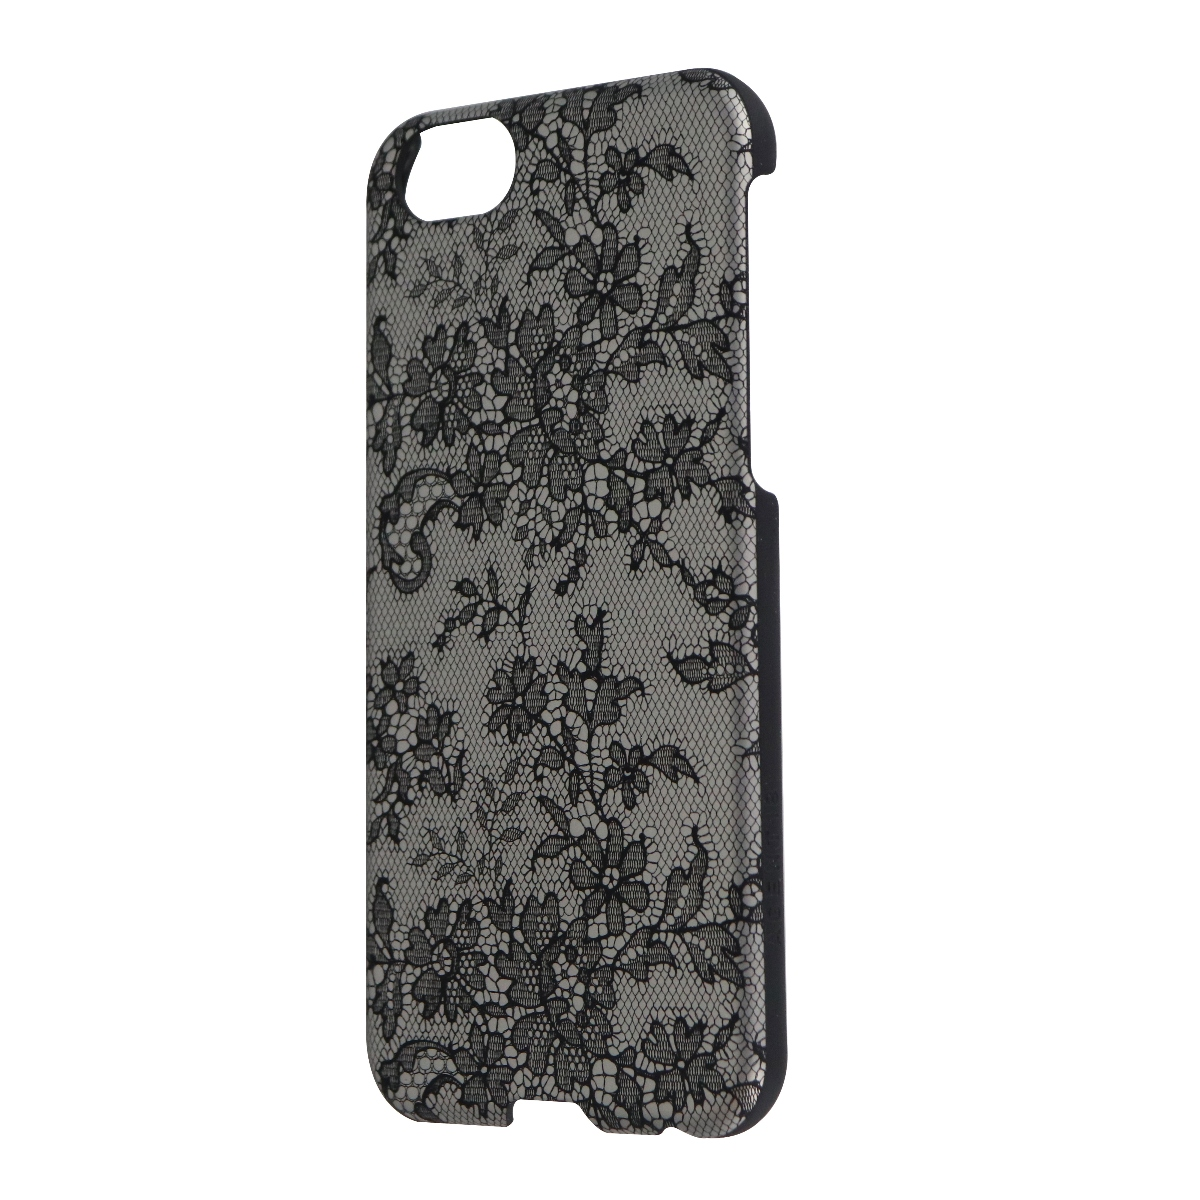 Agent18 SlimShield Series Hard Case Cover for iPhone 6s 6 - Silver Lace/Black